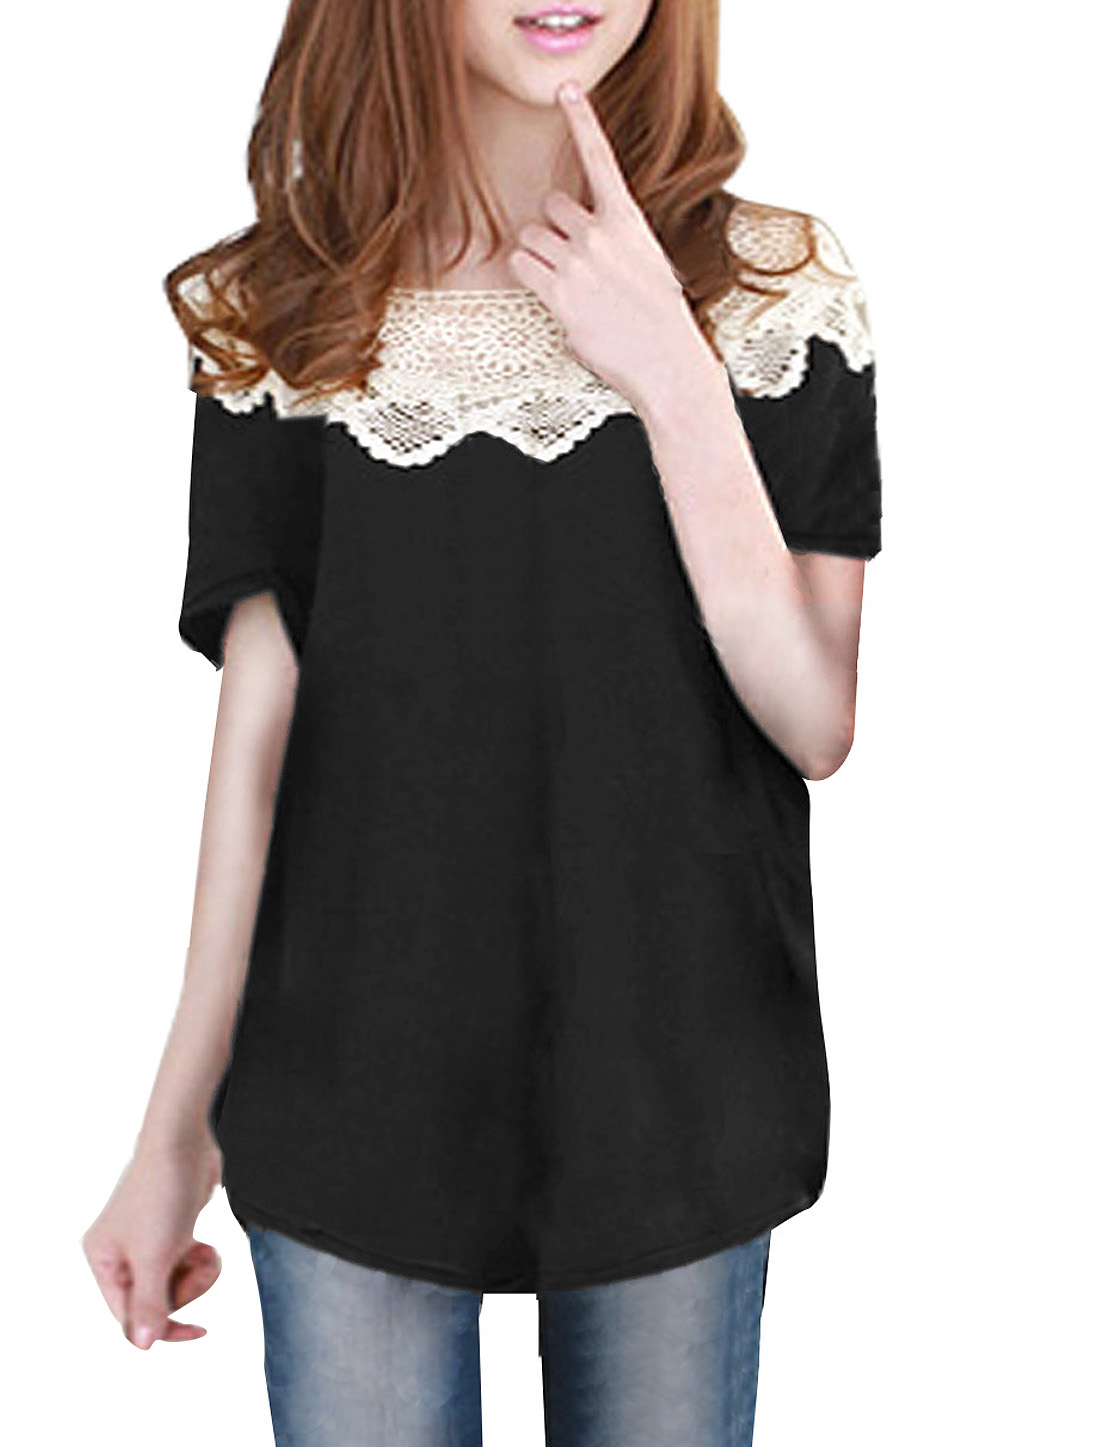 Scoop Neck Black Short Sleeve Loose Shirt XS for Ladies